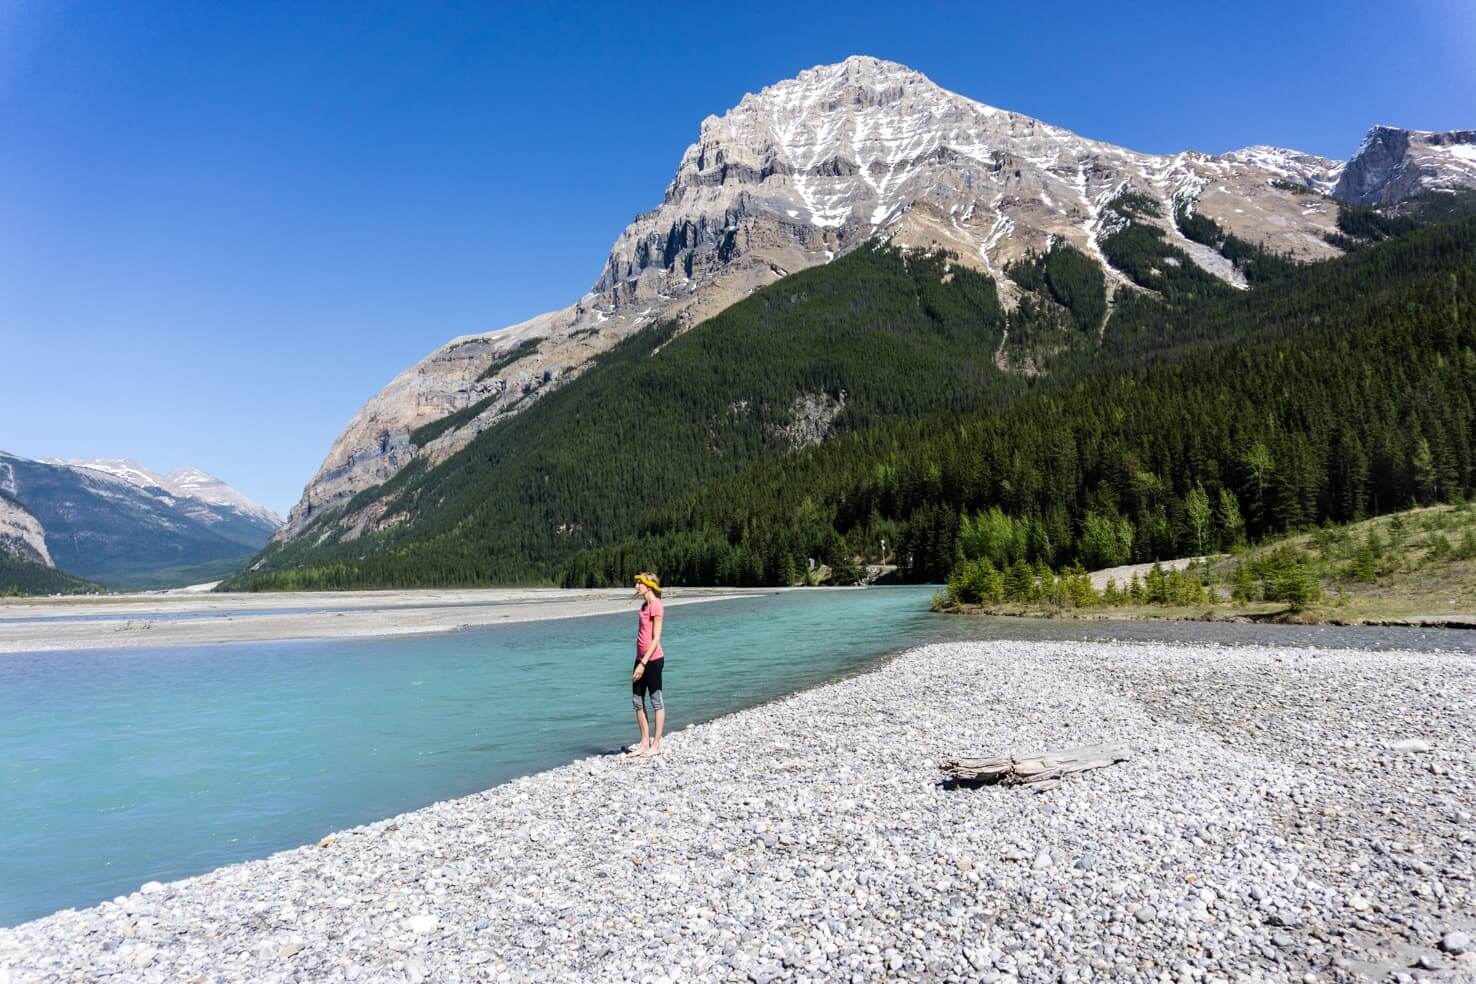 Western Canada Road Trip from Calgary to Vancouver - Kicking Horse River in Field